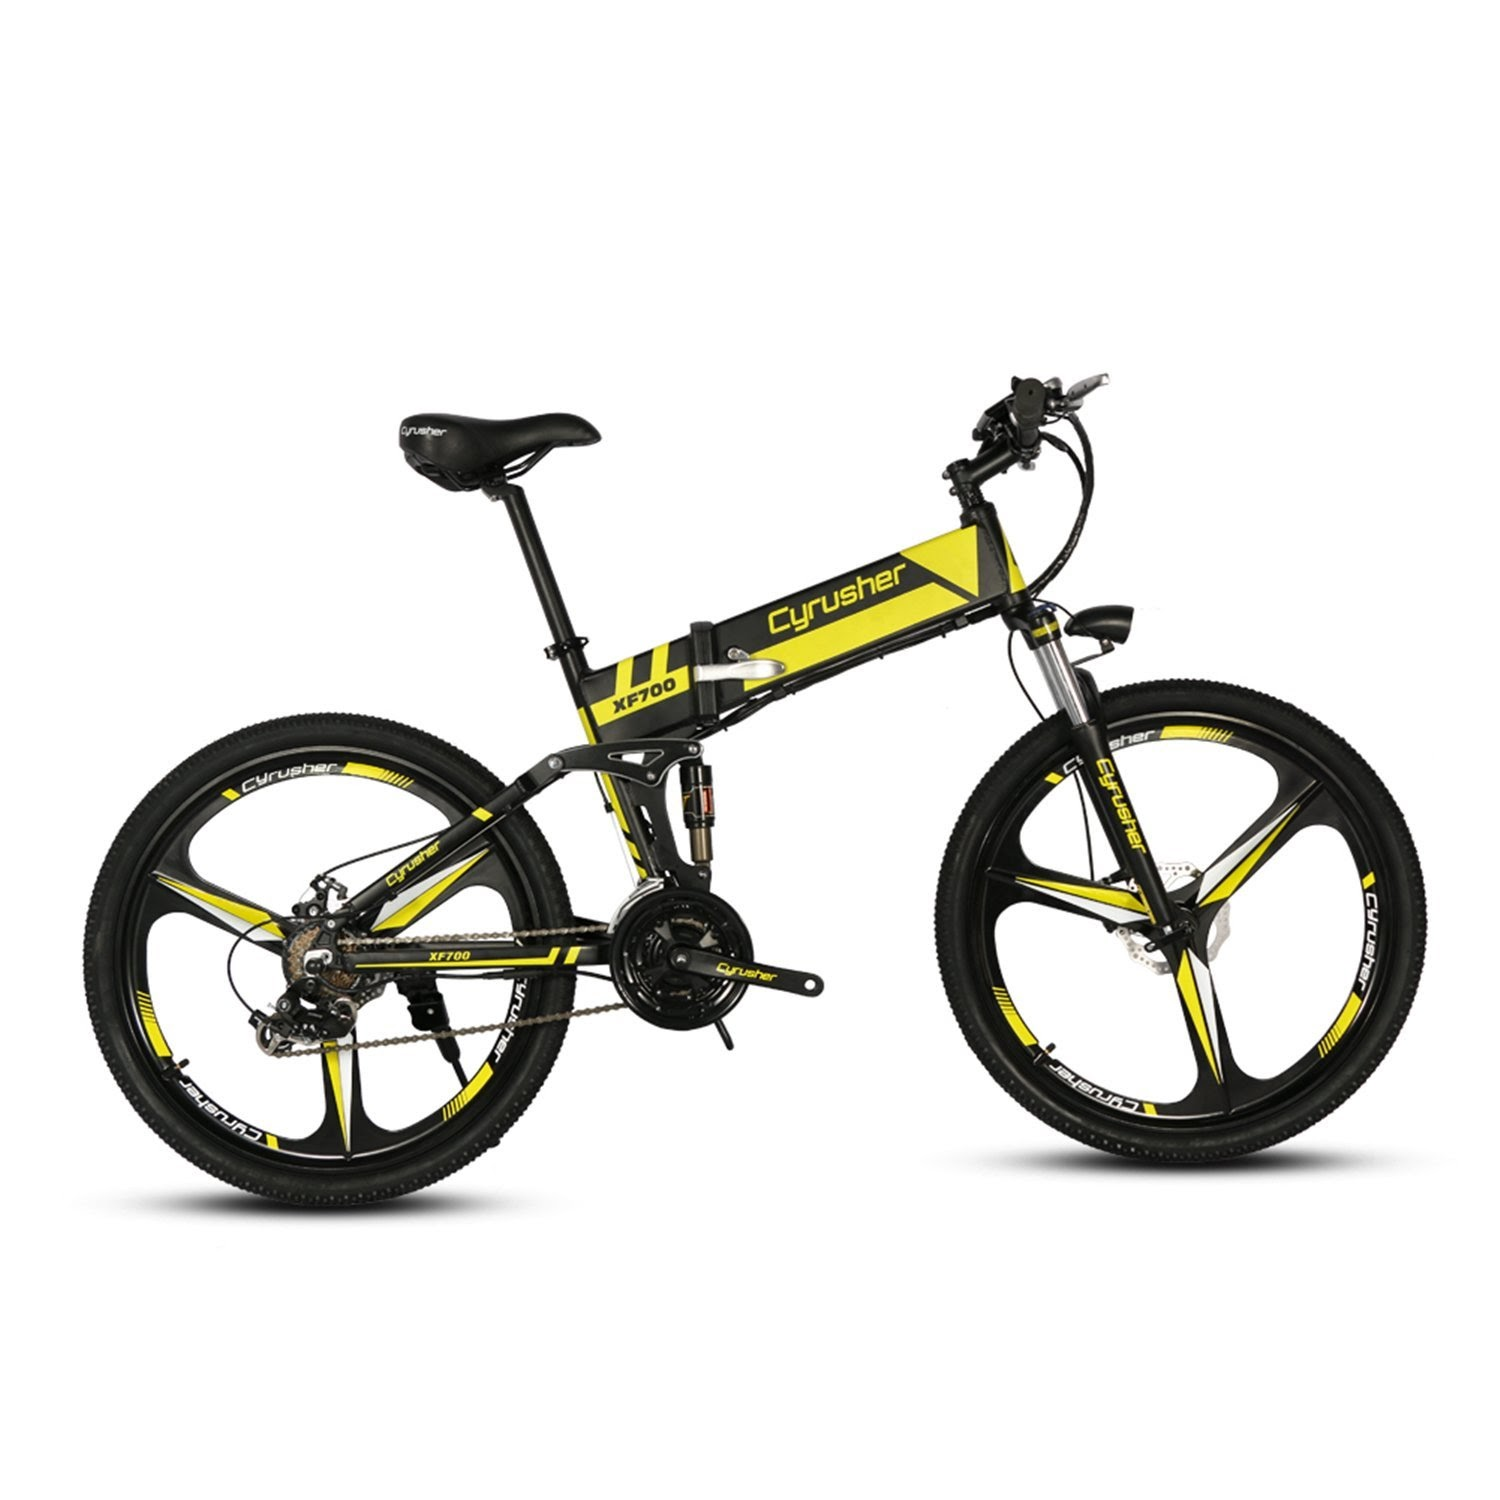 Exercise Bike Zone Cyrusher Xf700 26 Inch Folding Electric Mountain Bike With Full Suspension